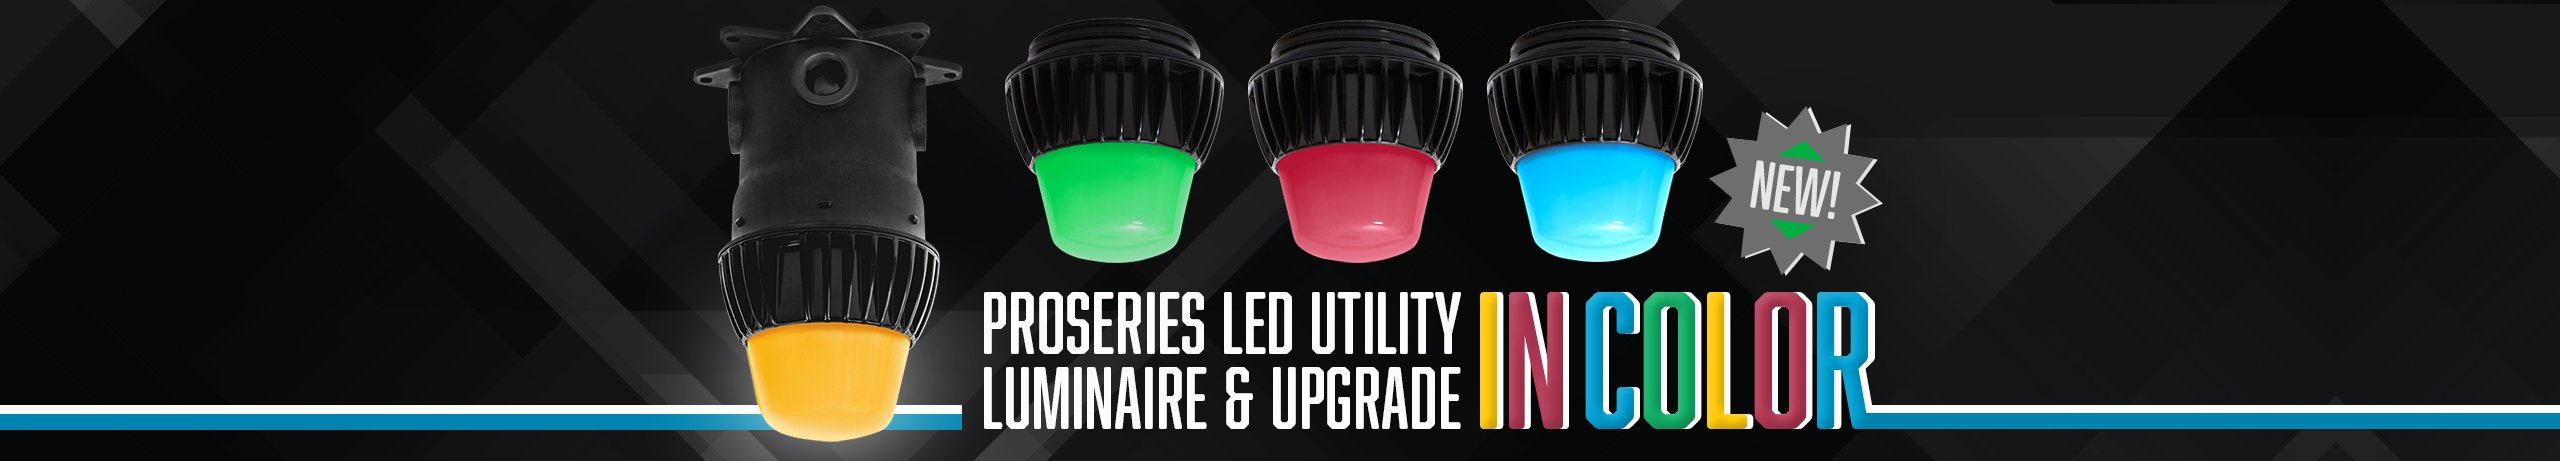 ProSeries LED Color Utility Luminaire and Upgrade